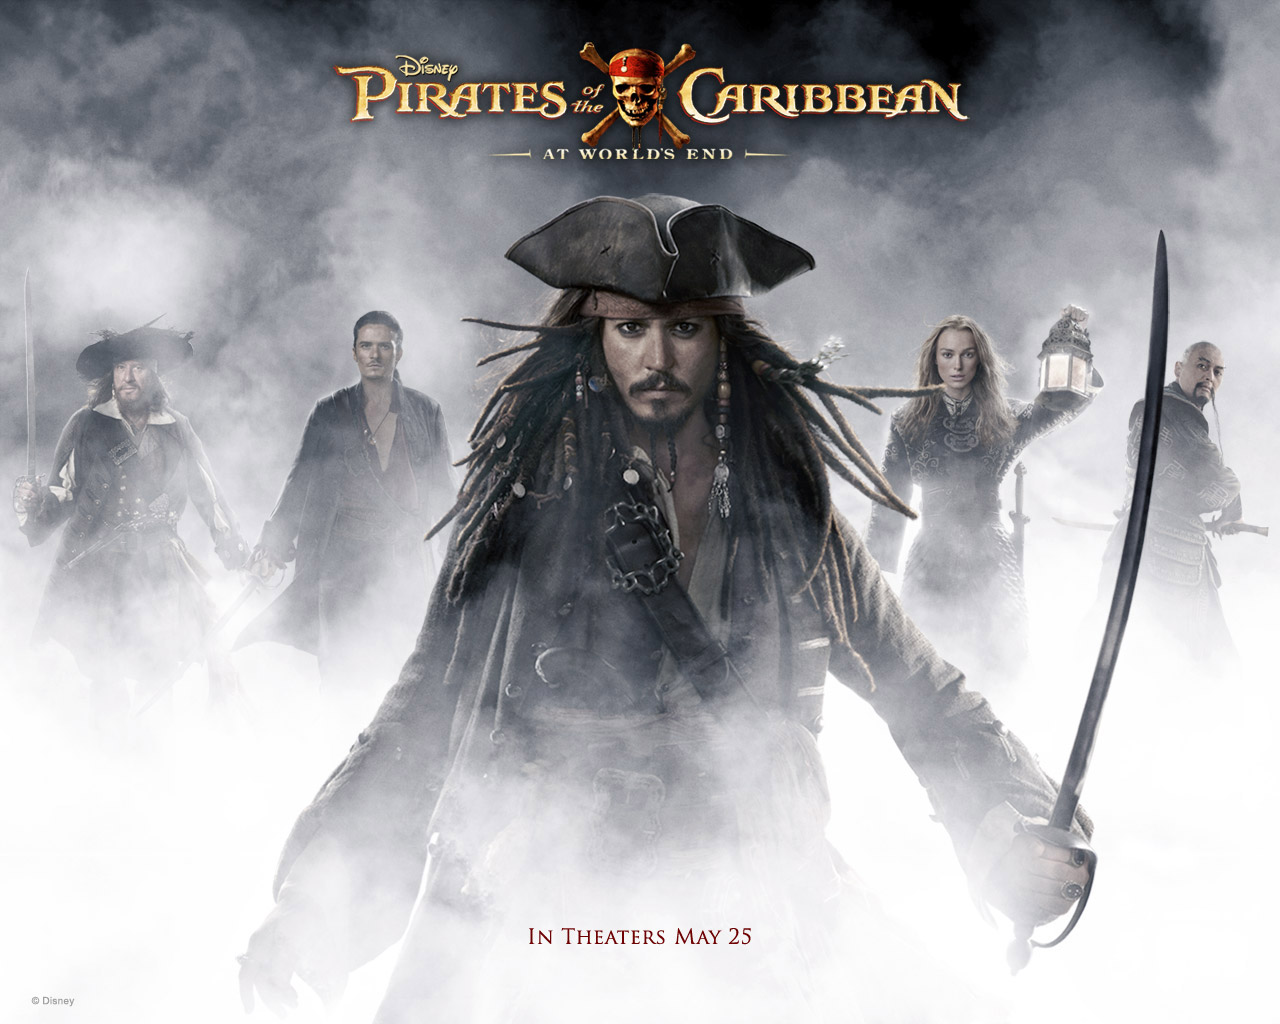 http://4.bp.blogspot.com/_UMBMi20kkYU/TUxZ6jCAhJI/AAAAAAAAAEo/rOrIrVlpuvg/s1600/Johnny_Depp_in_Pirates_of_the_Caribbean+_At_Worlds_End_Wallpaper_1_800.jpg